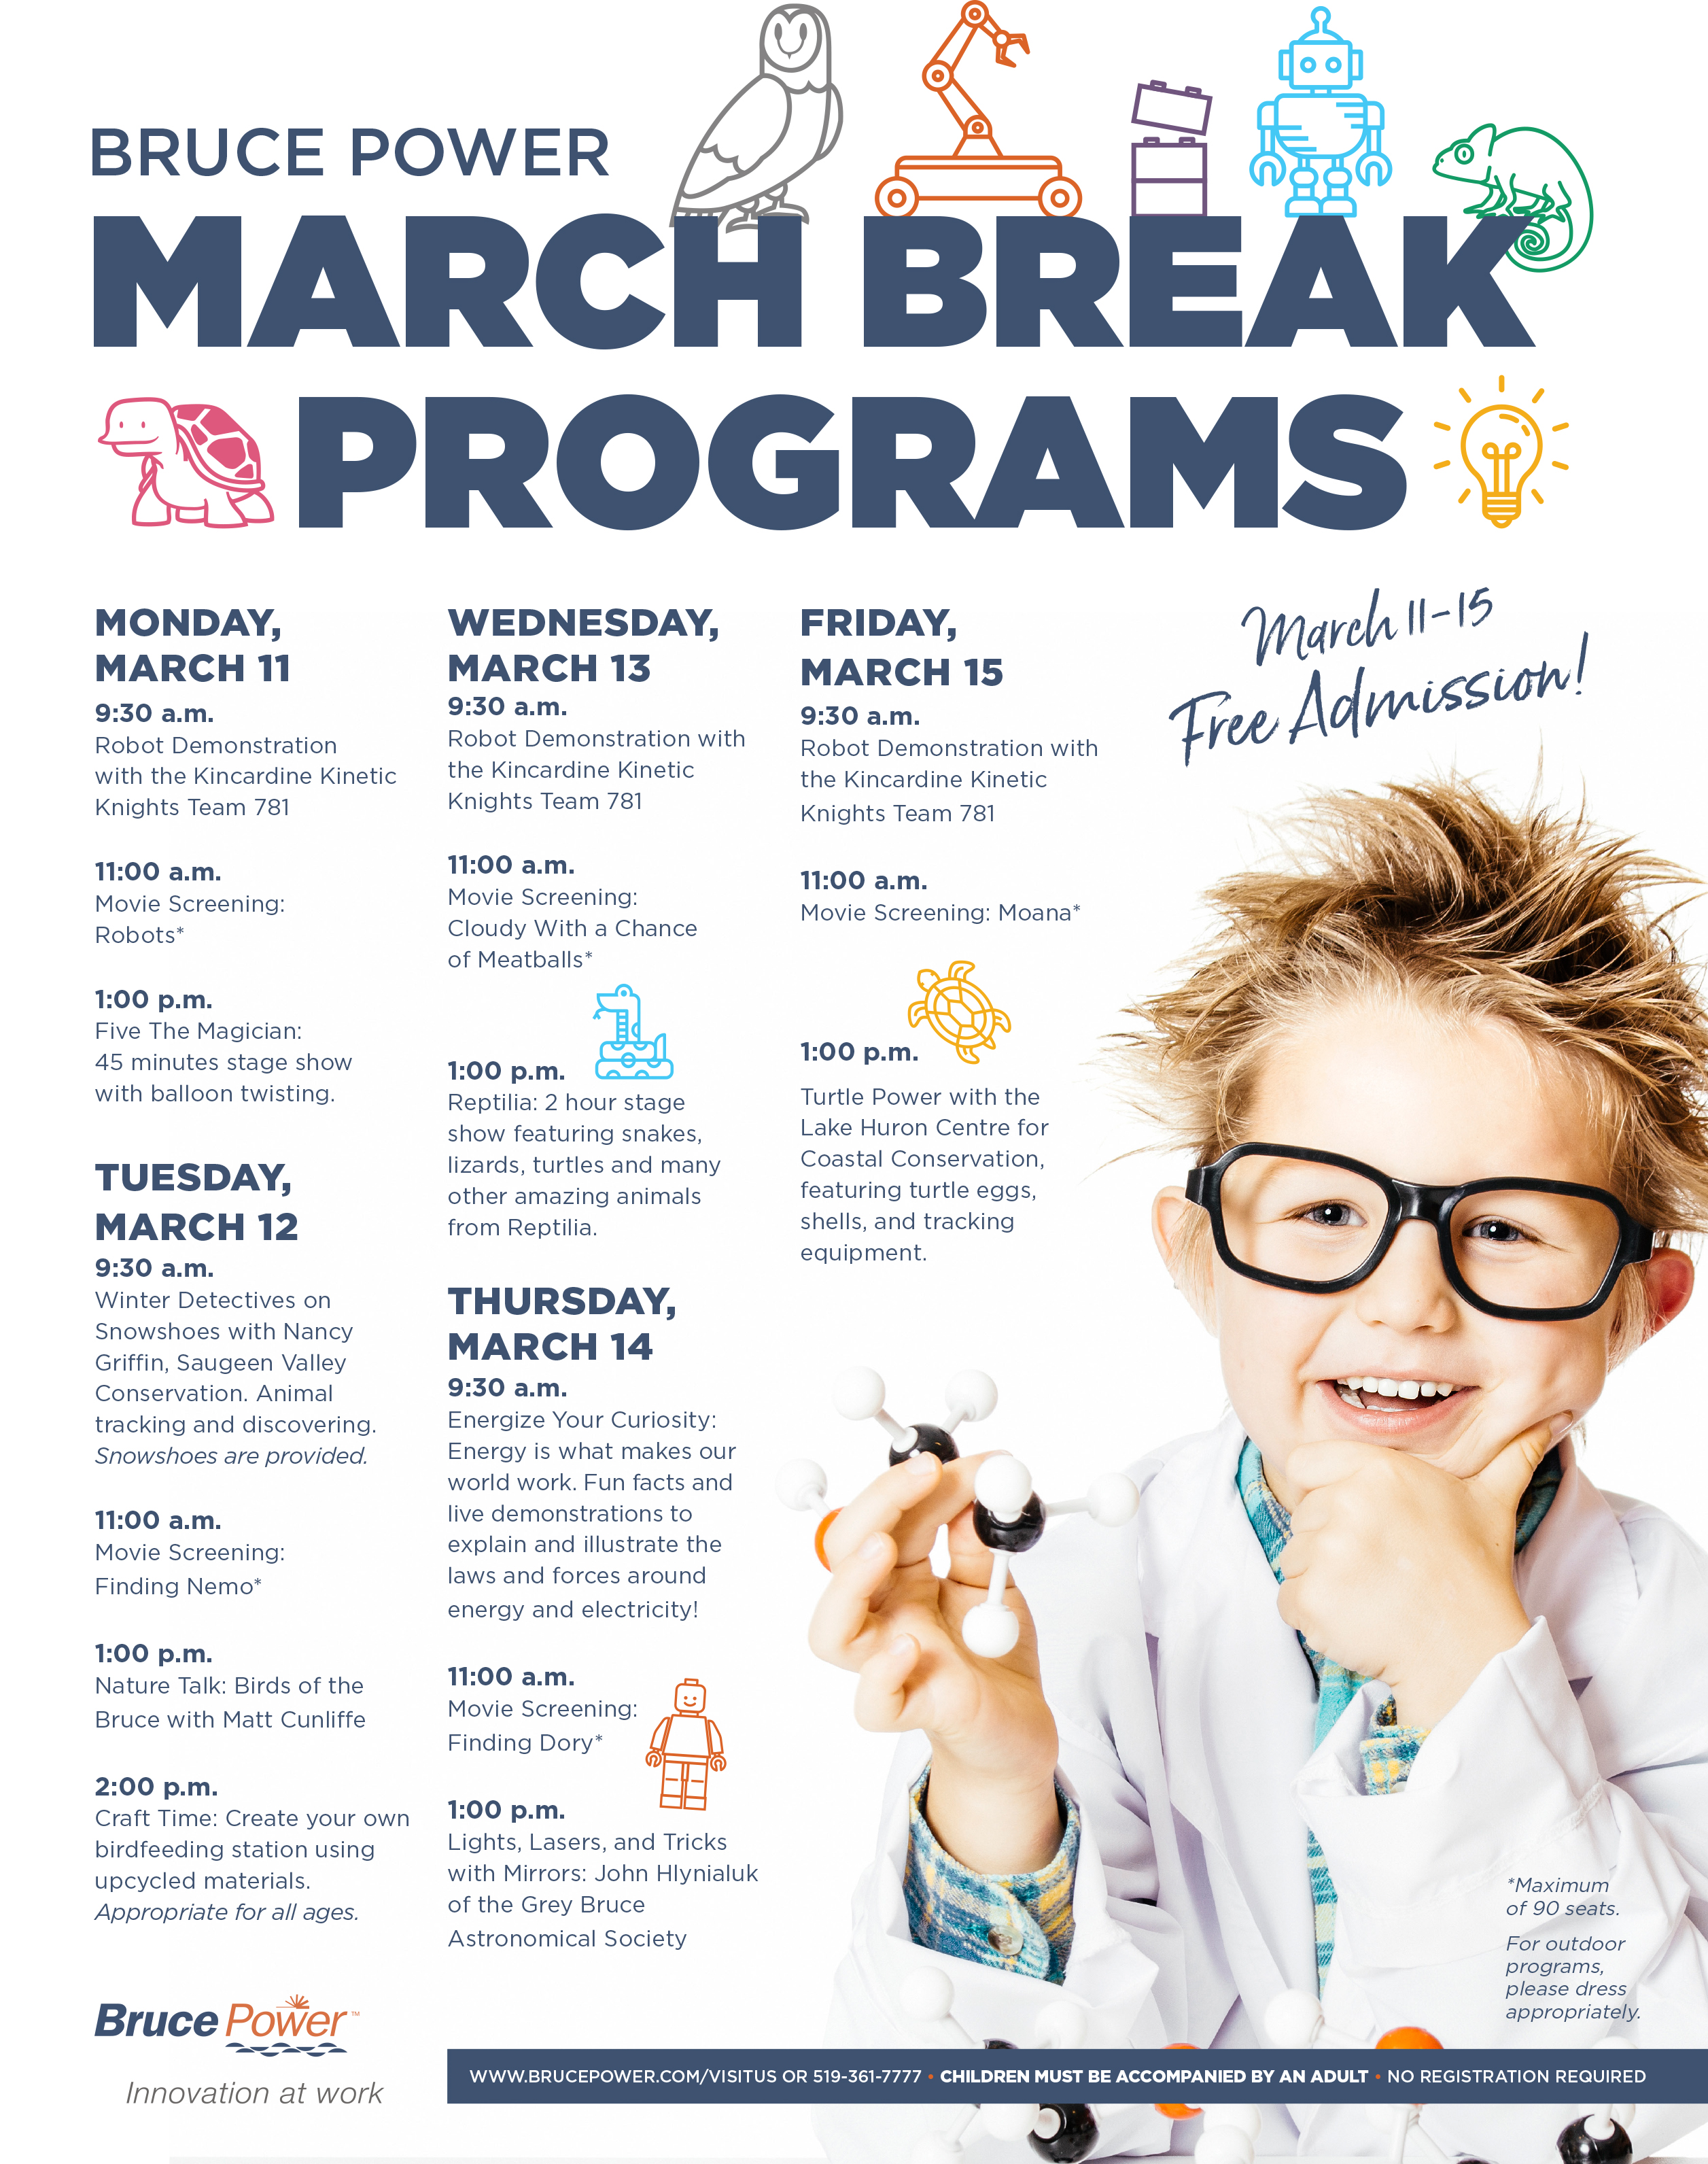 March Break Programs advertisement